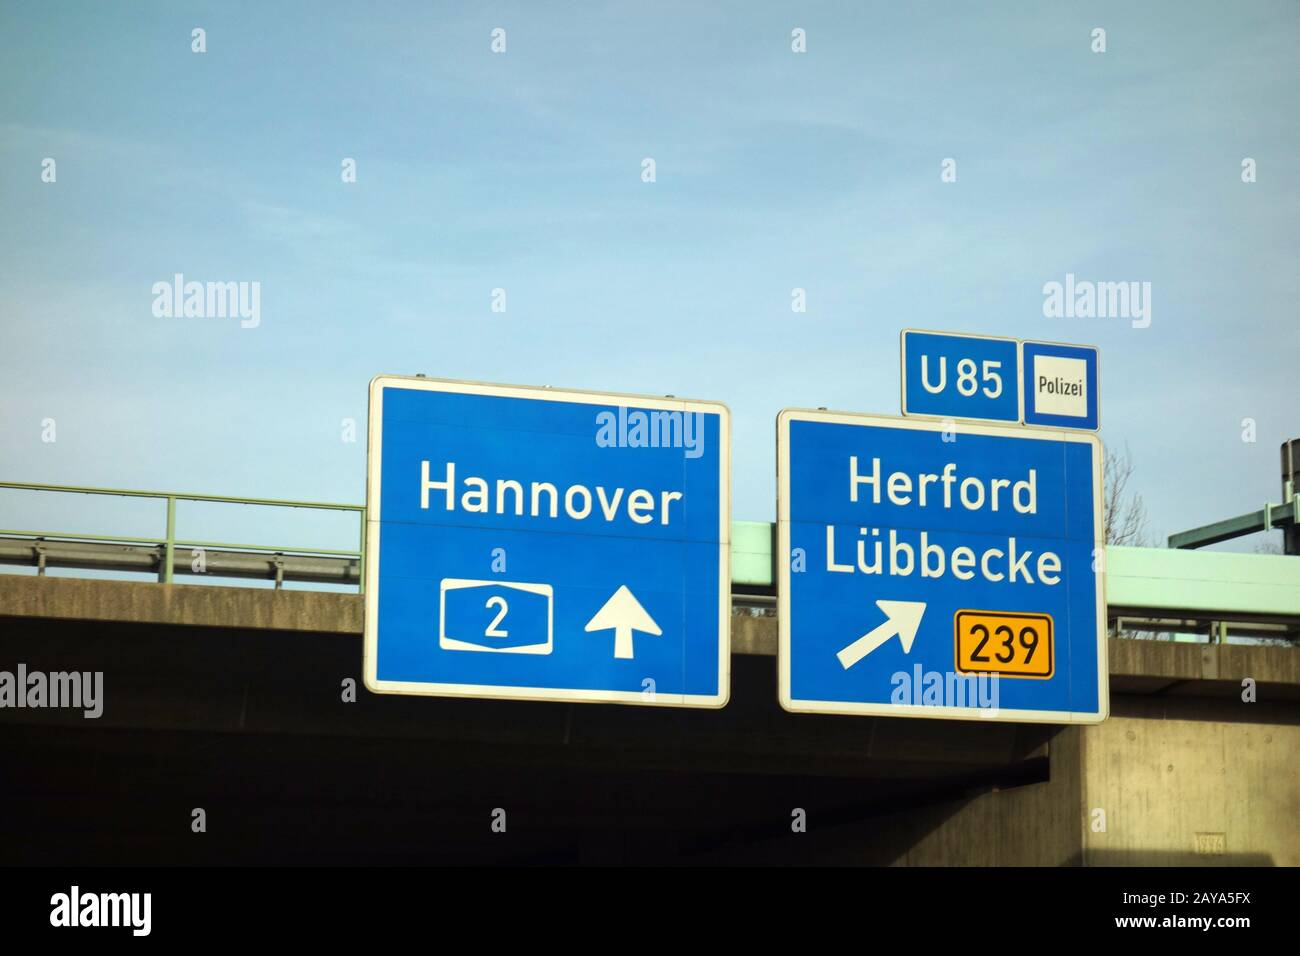 highway sign, hannover, a2, herford, luebbecke, b 239, u85 Stock Photo